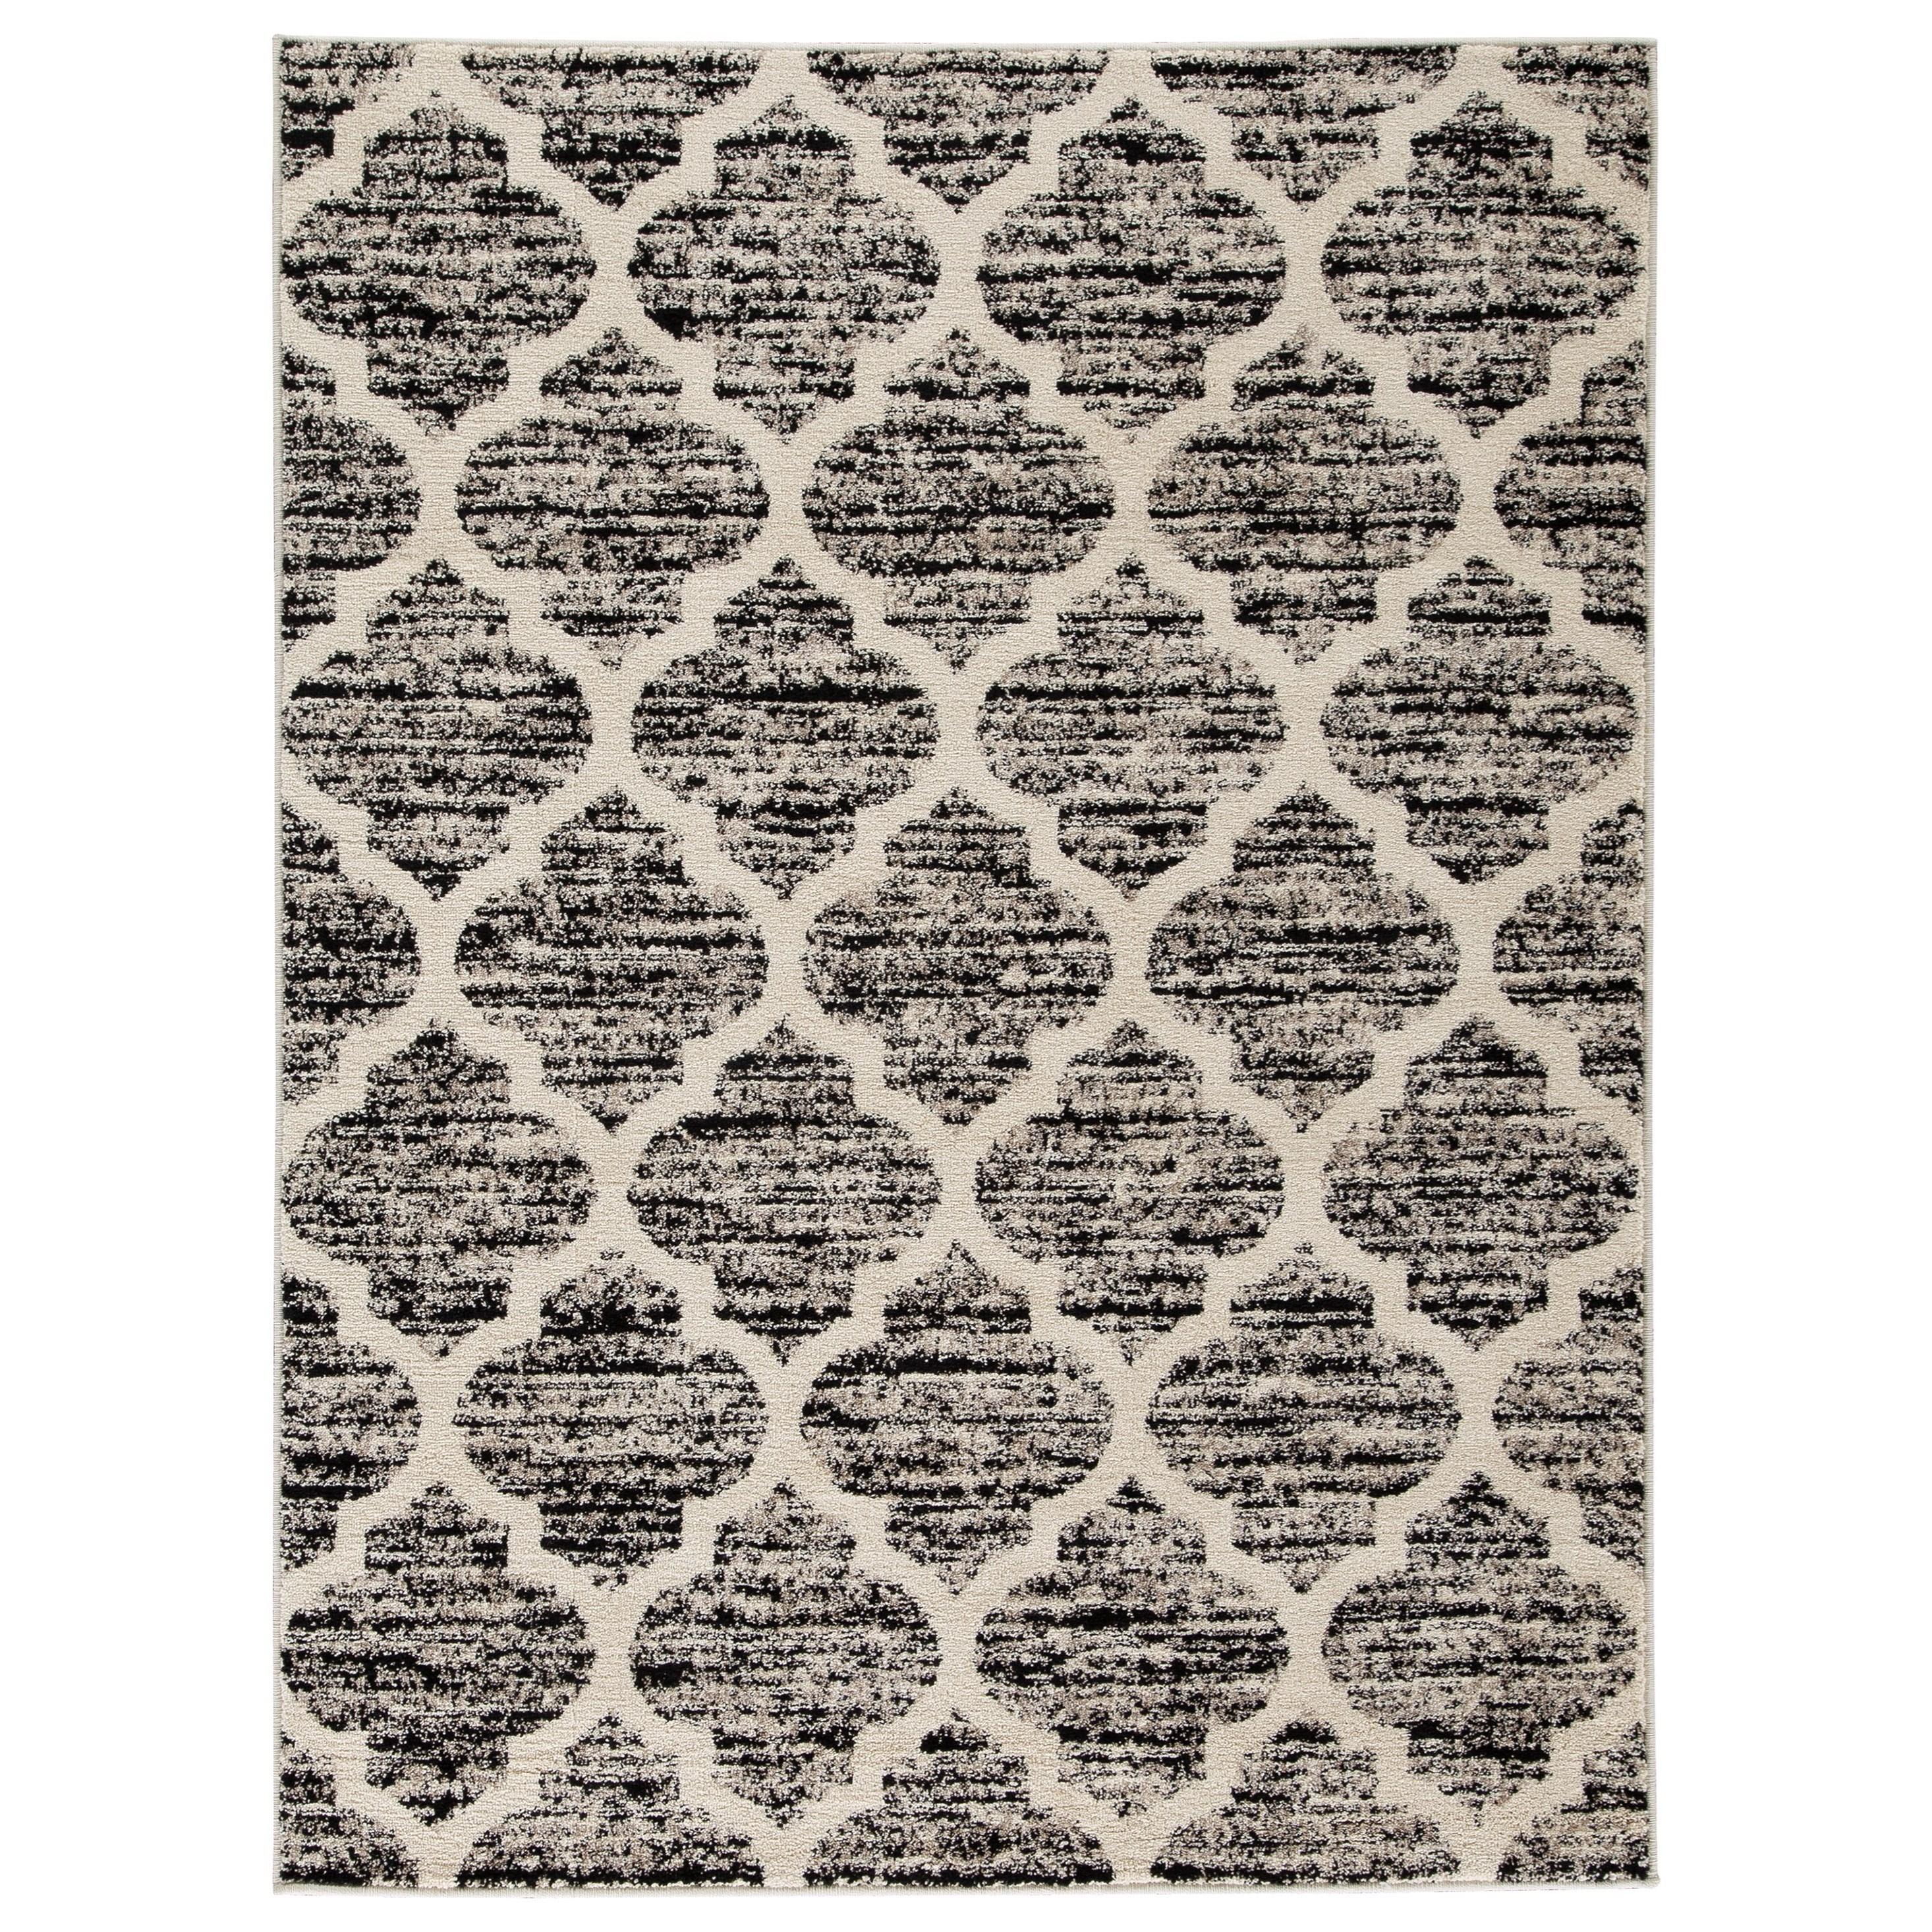 Transitional Area Rugs Kaila Black Cream Gray Large Rug By Signature Design By Ashley At Royal Furniture